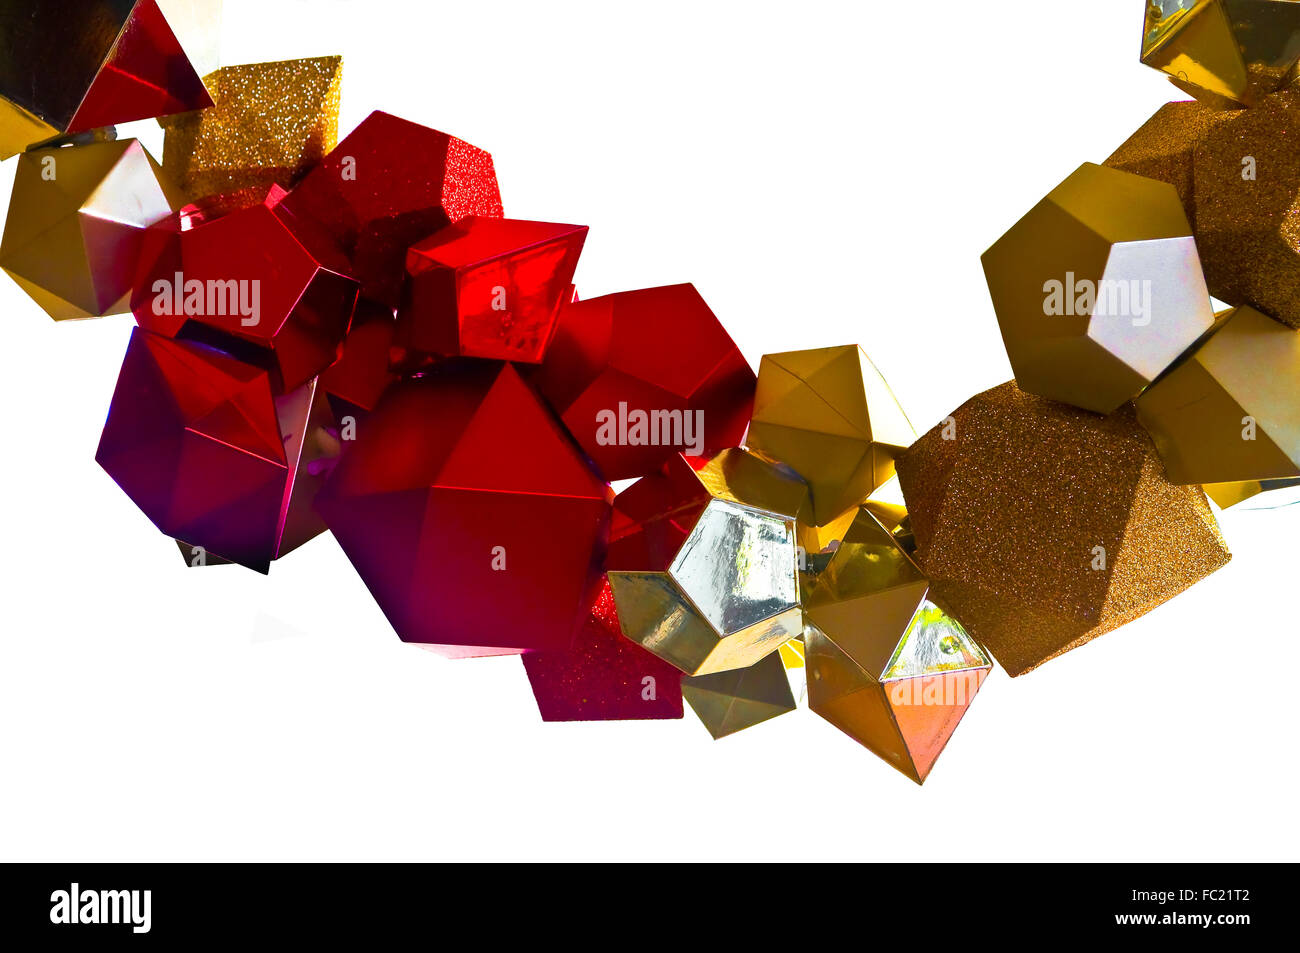 Red, Silver and Gold polyhedron garland for christmas. Detail closeup. - Stock Image